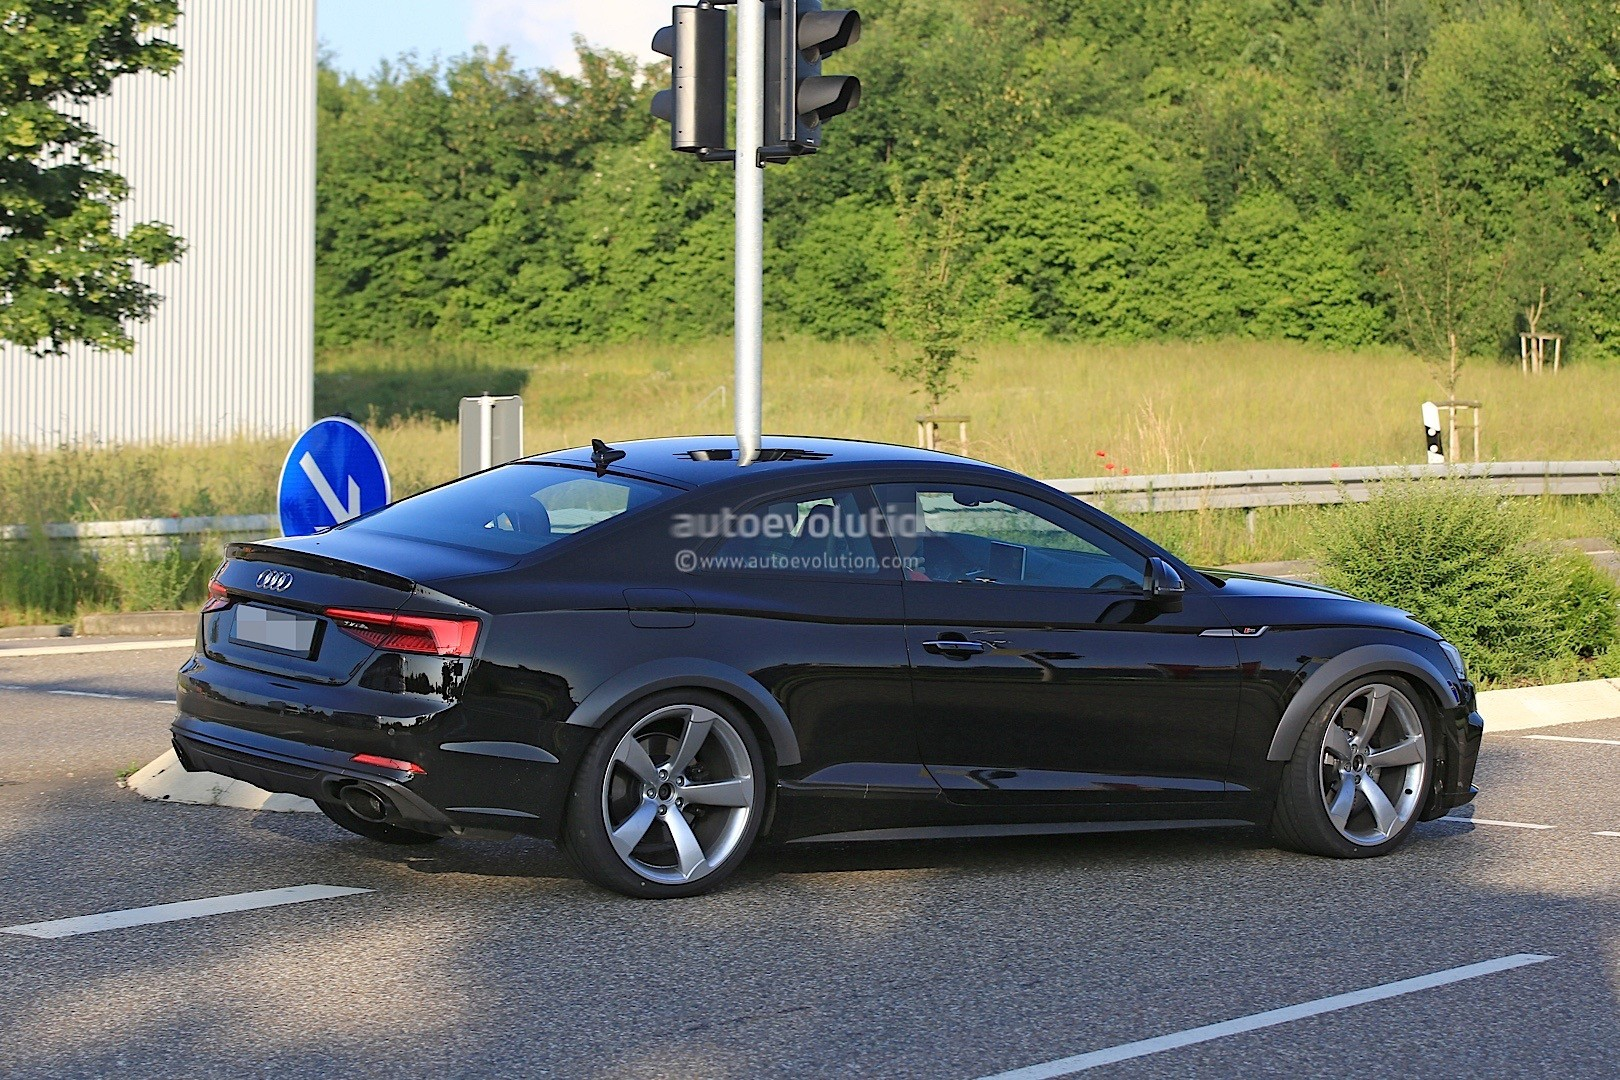 2018 Audi Rs5 Coupe Test Mule Spied In Audi S5 Coupe